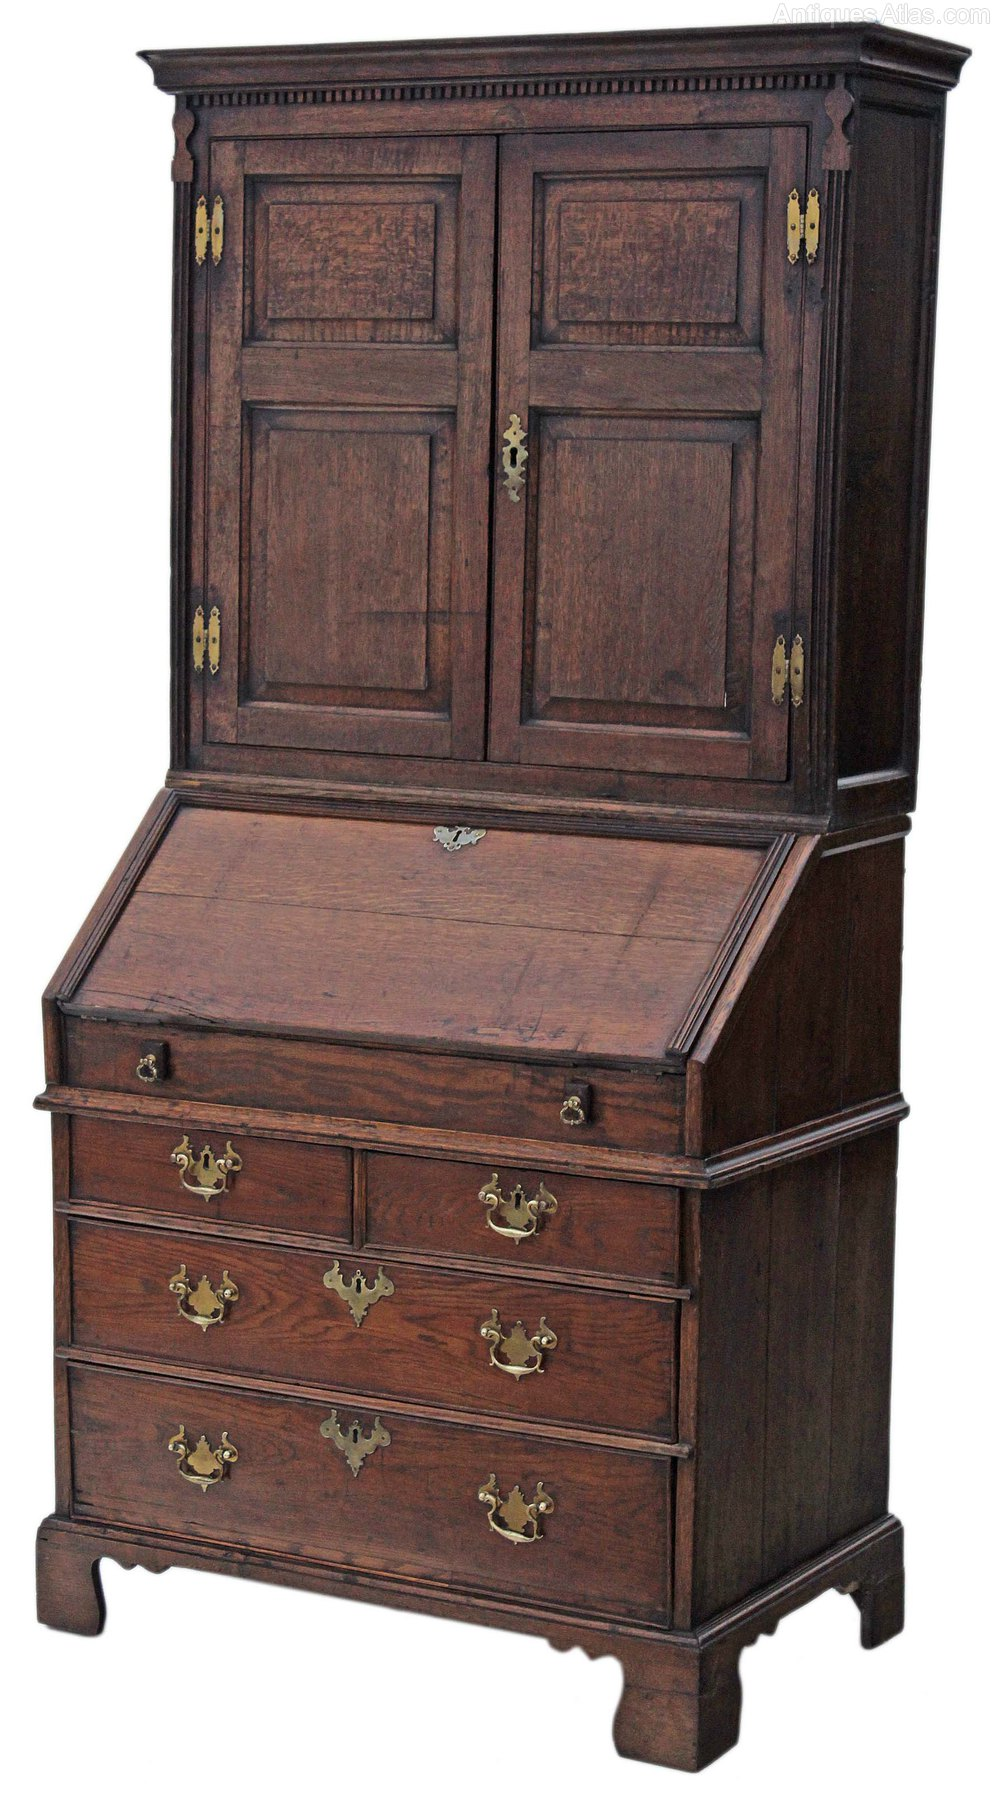 georgian oak bureau bookcase desk writing table antiques atlas. Black Bedroom Furniture Sets. Home Design Ideas